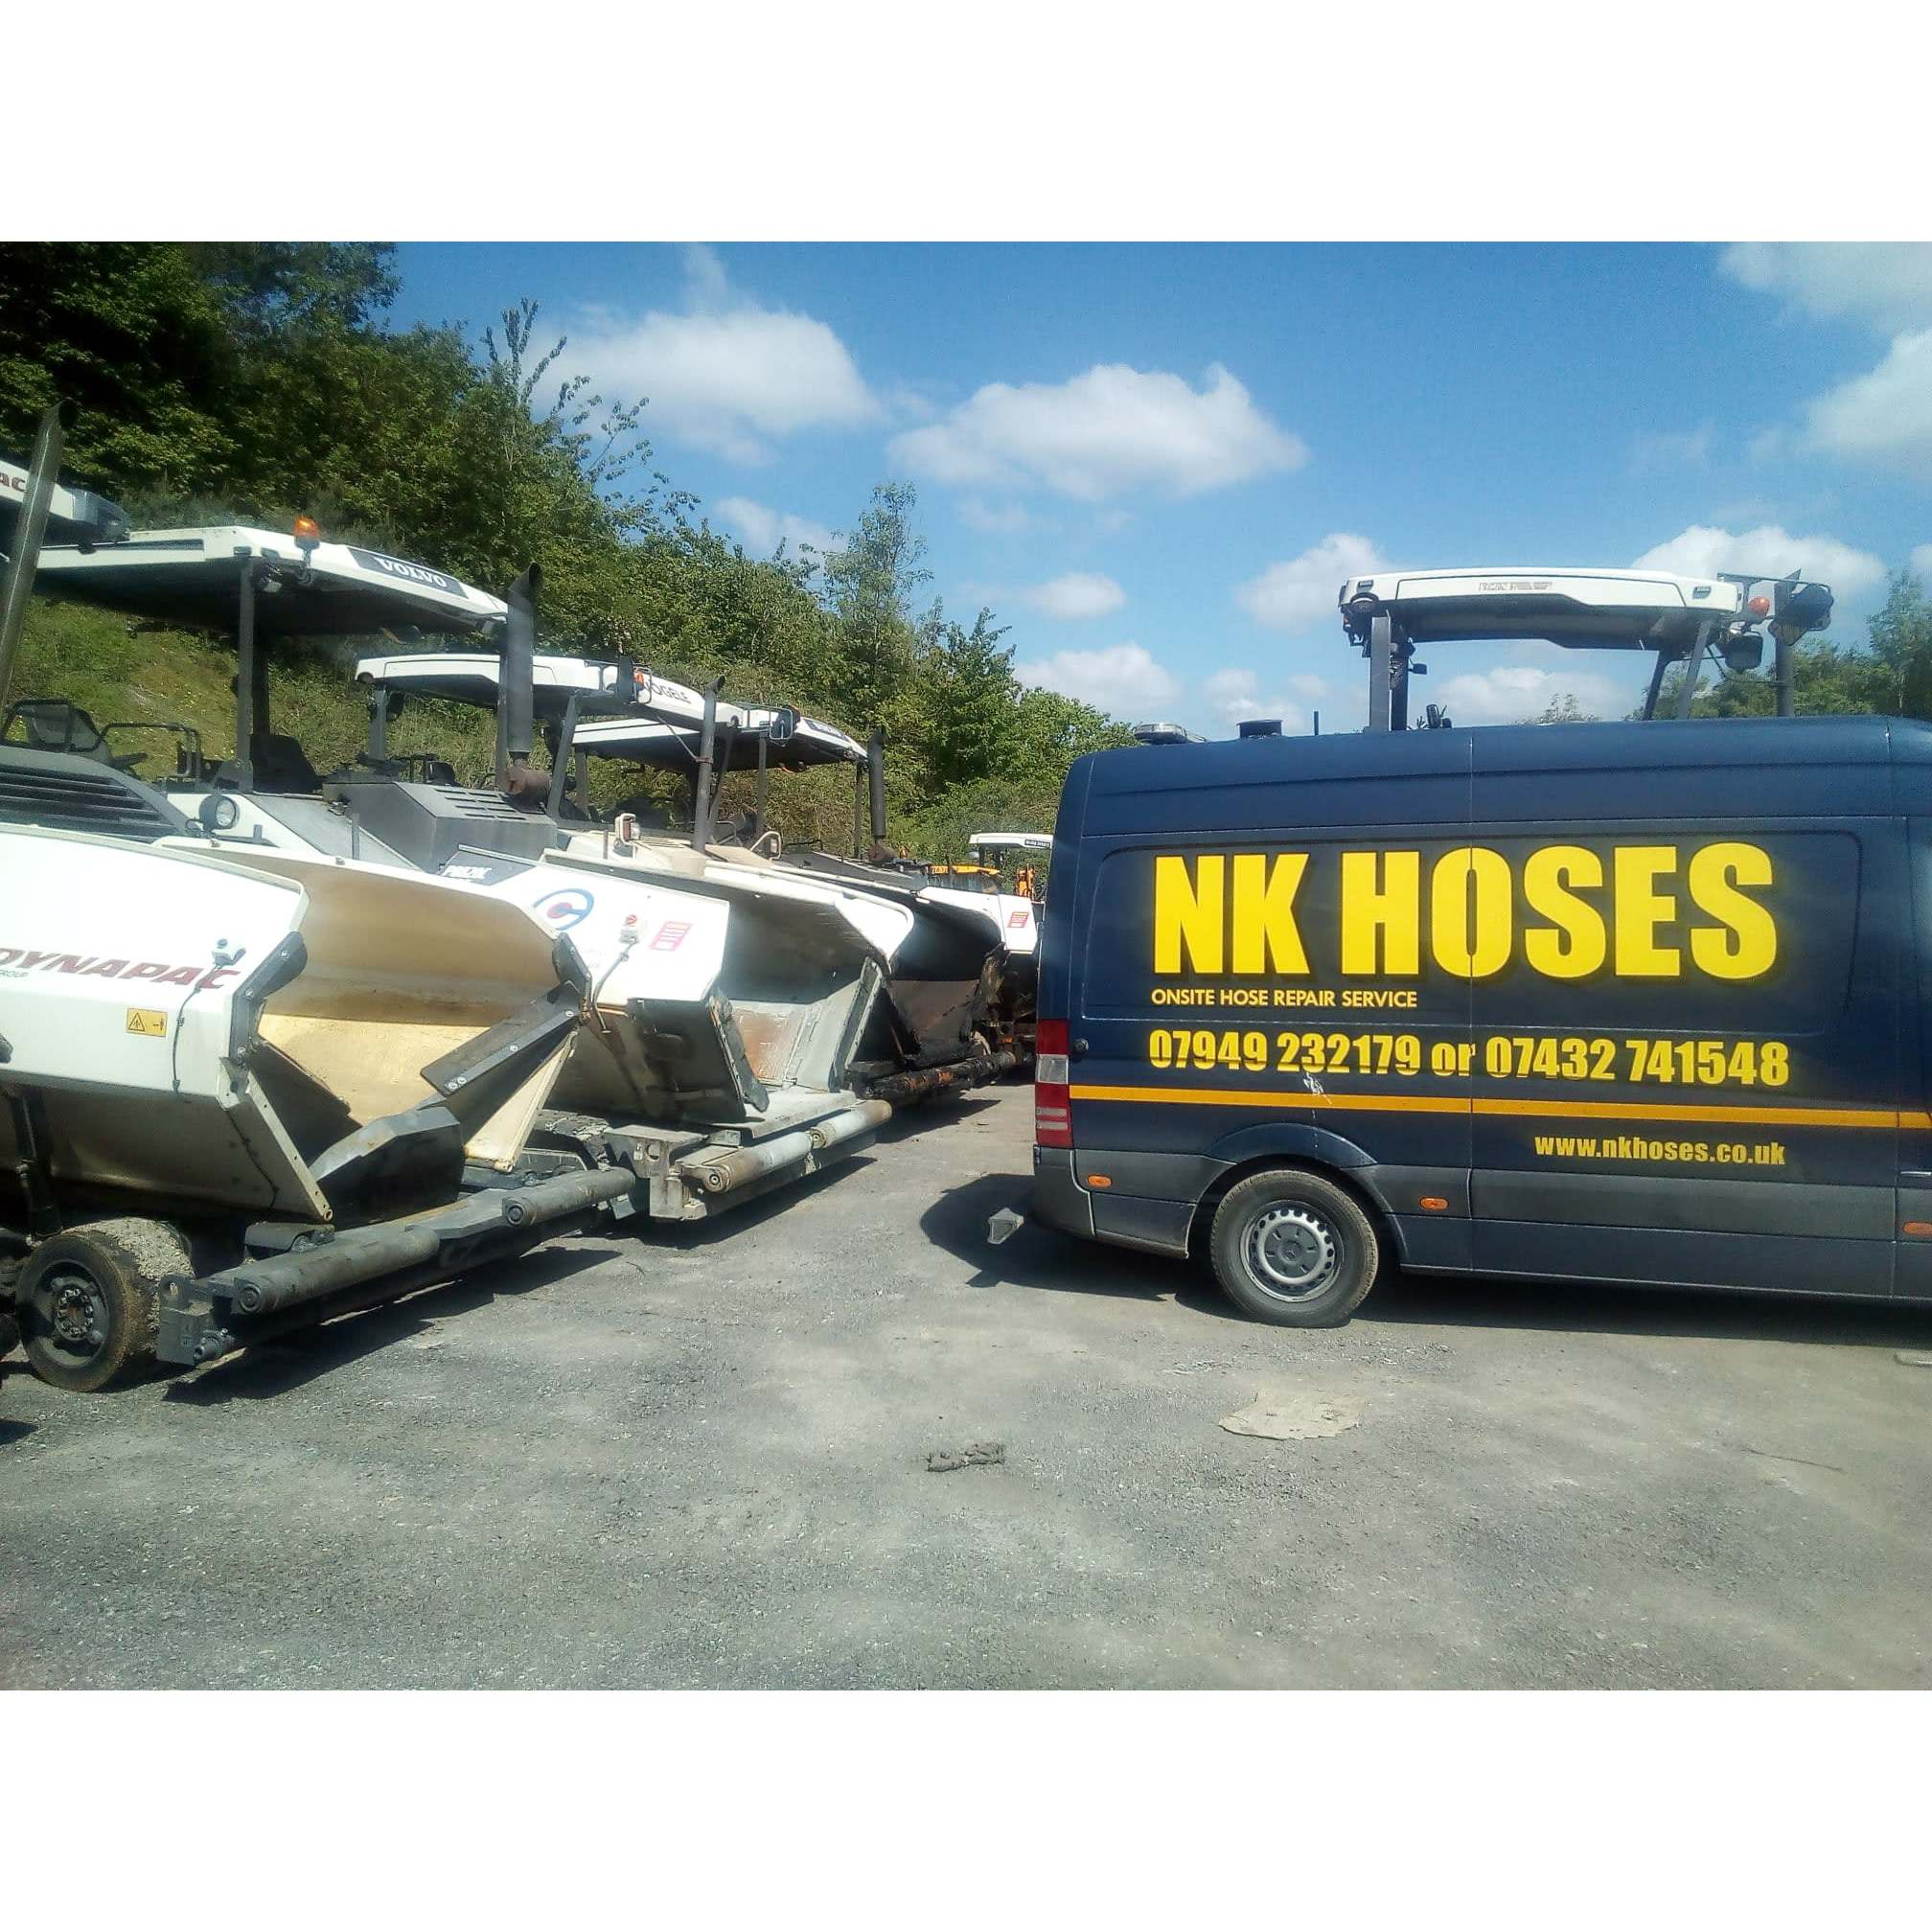 N K Hoses Ltd - Frome, Somerset  - 07949 232179 | ShowMeLocal.com